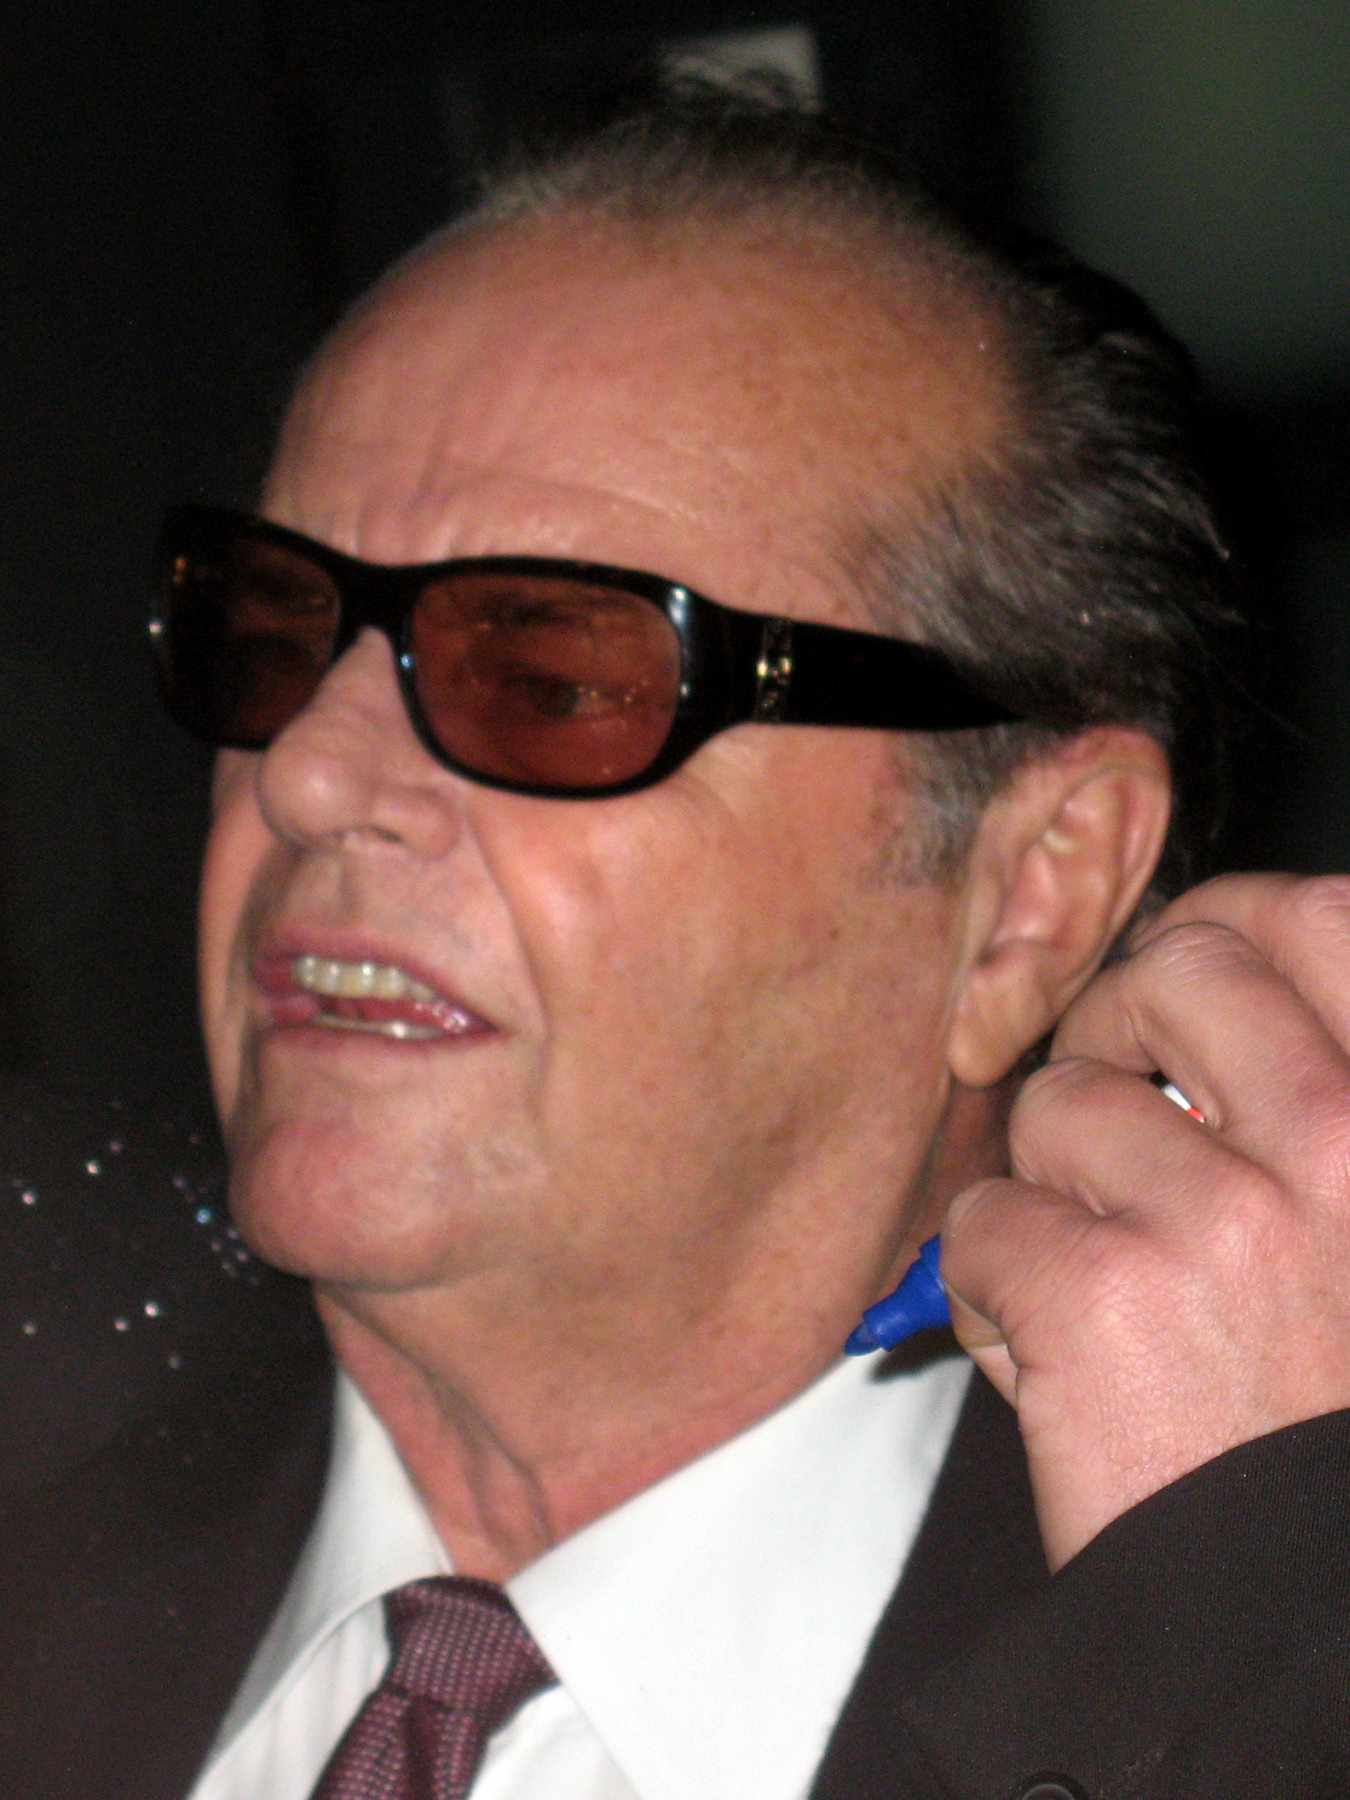 Jack Nicholson 2011 photo